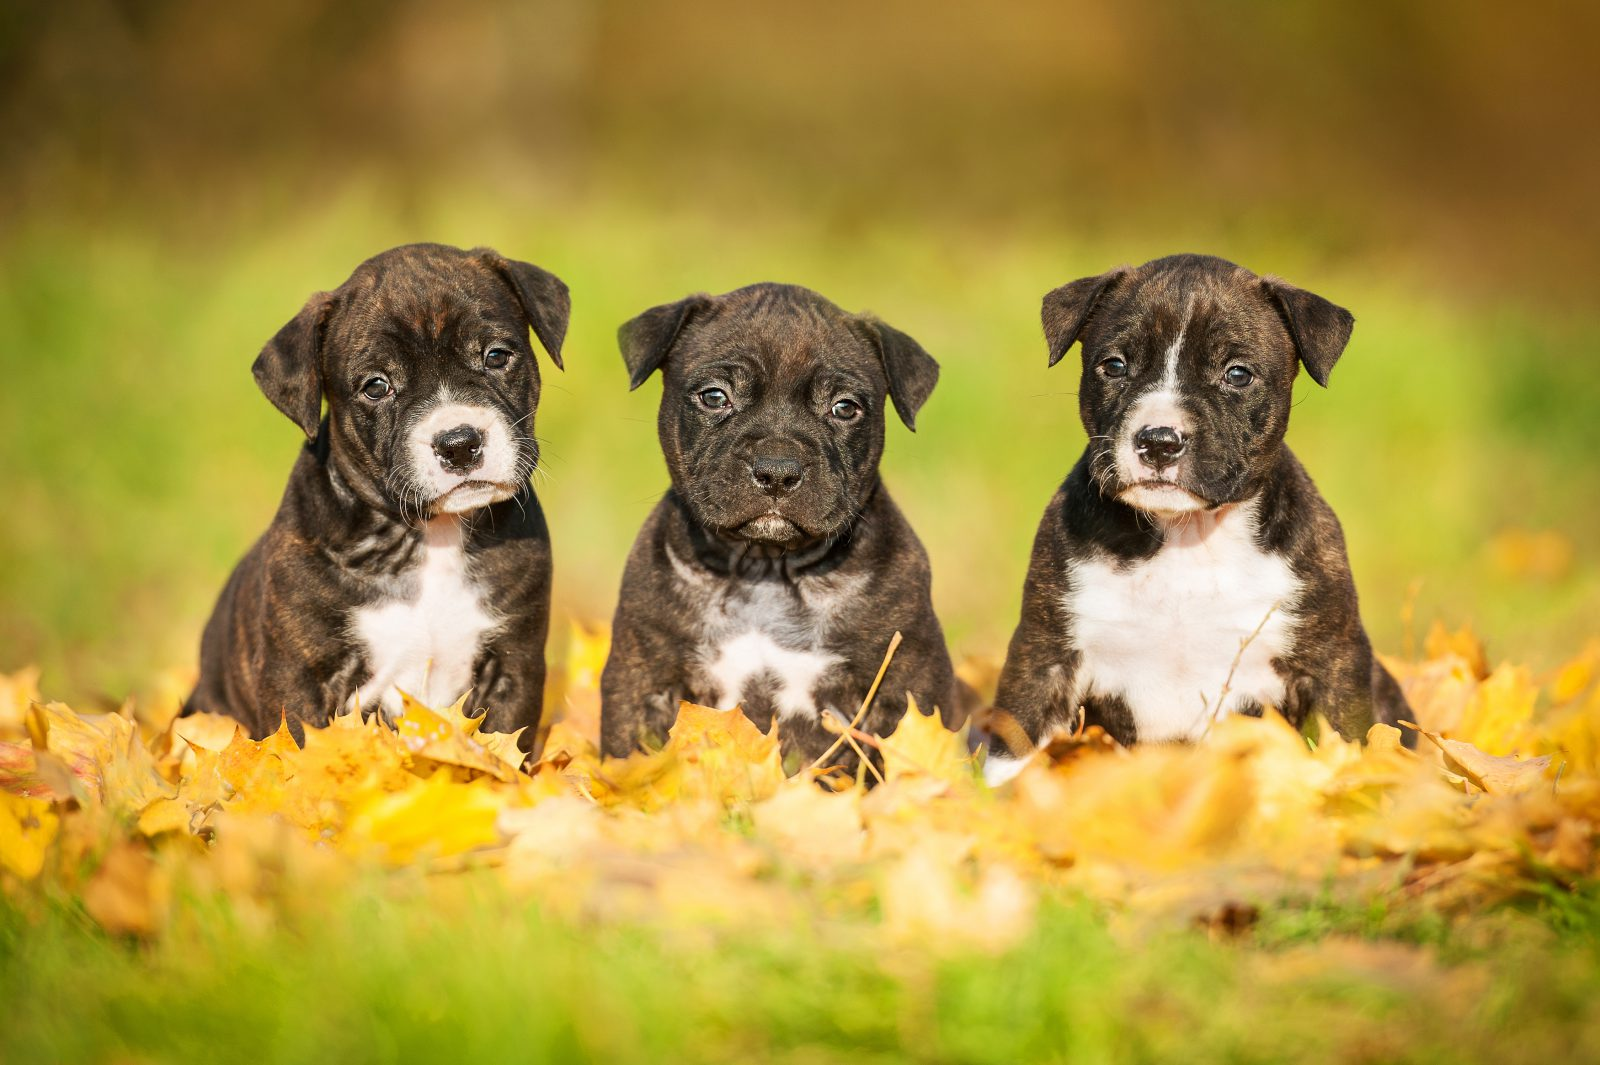 cao-staffordshire-terrier-saude